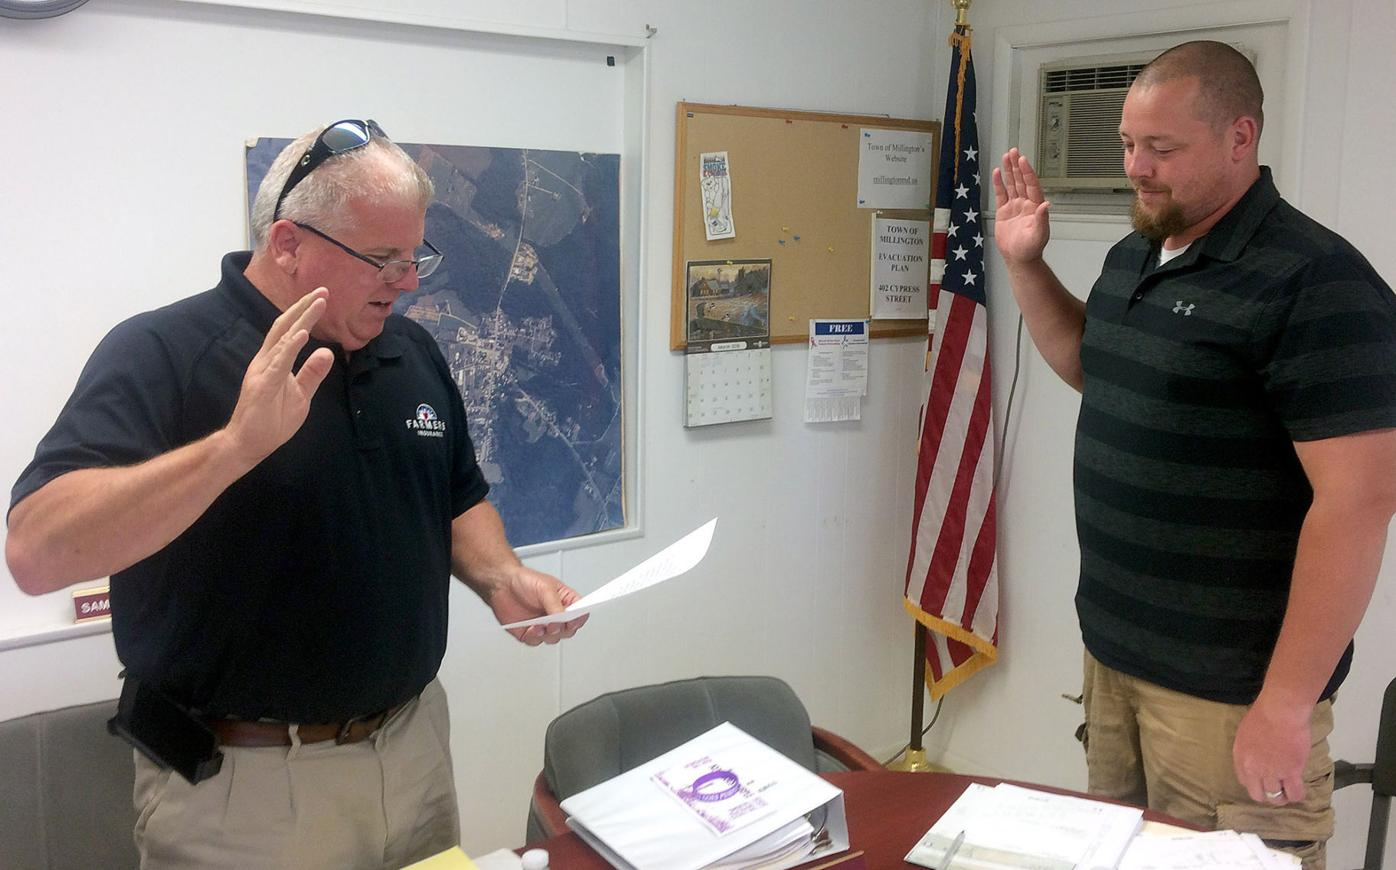 Manning is unopposed for 3rd third as Millington councilman